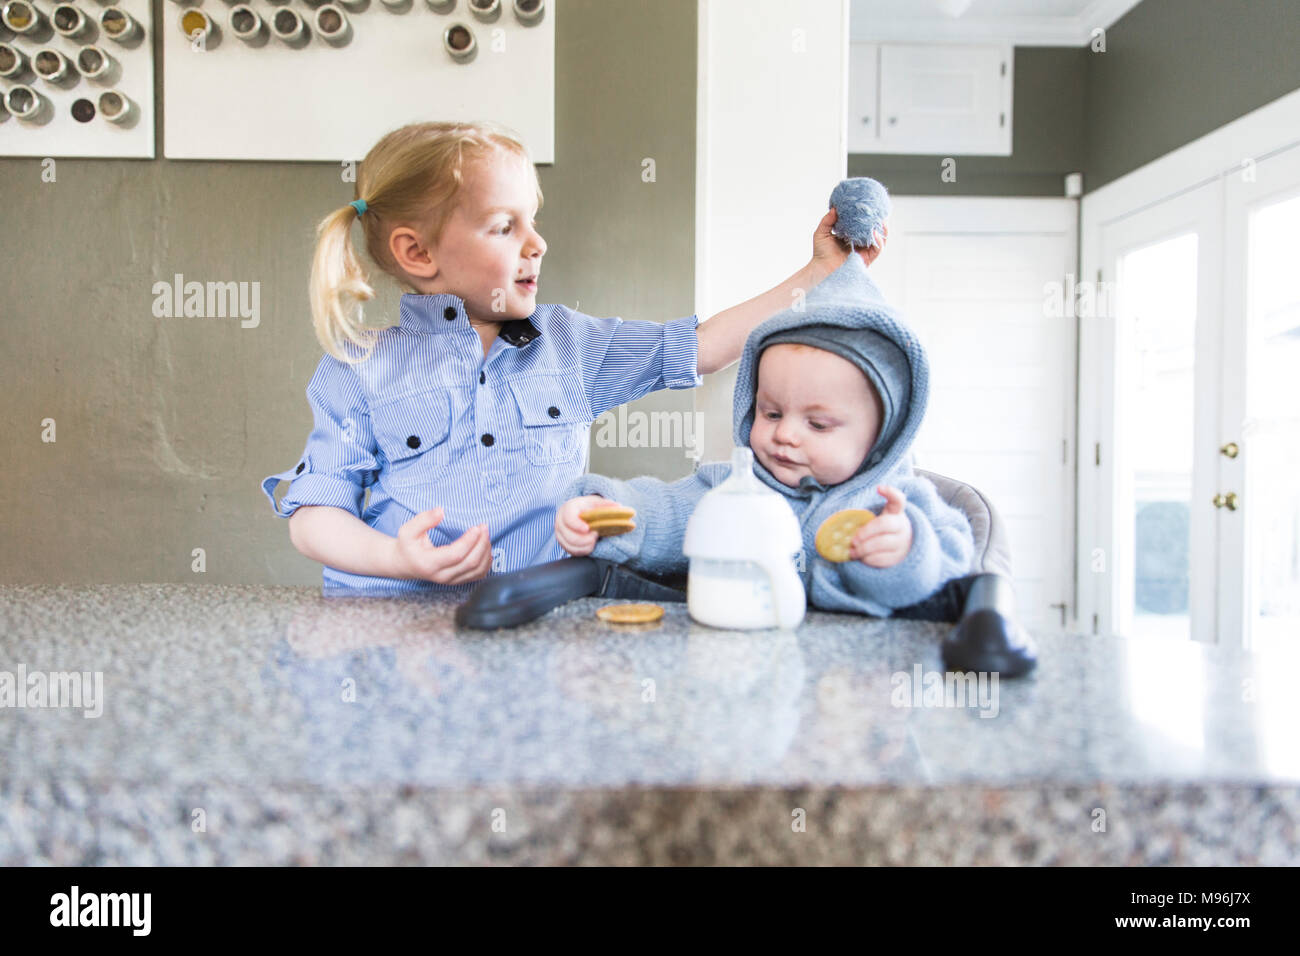 Girl and baby dressed in blue at kitchen counter - Stock Image